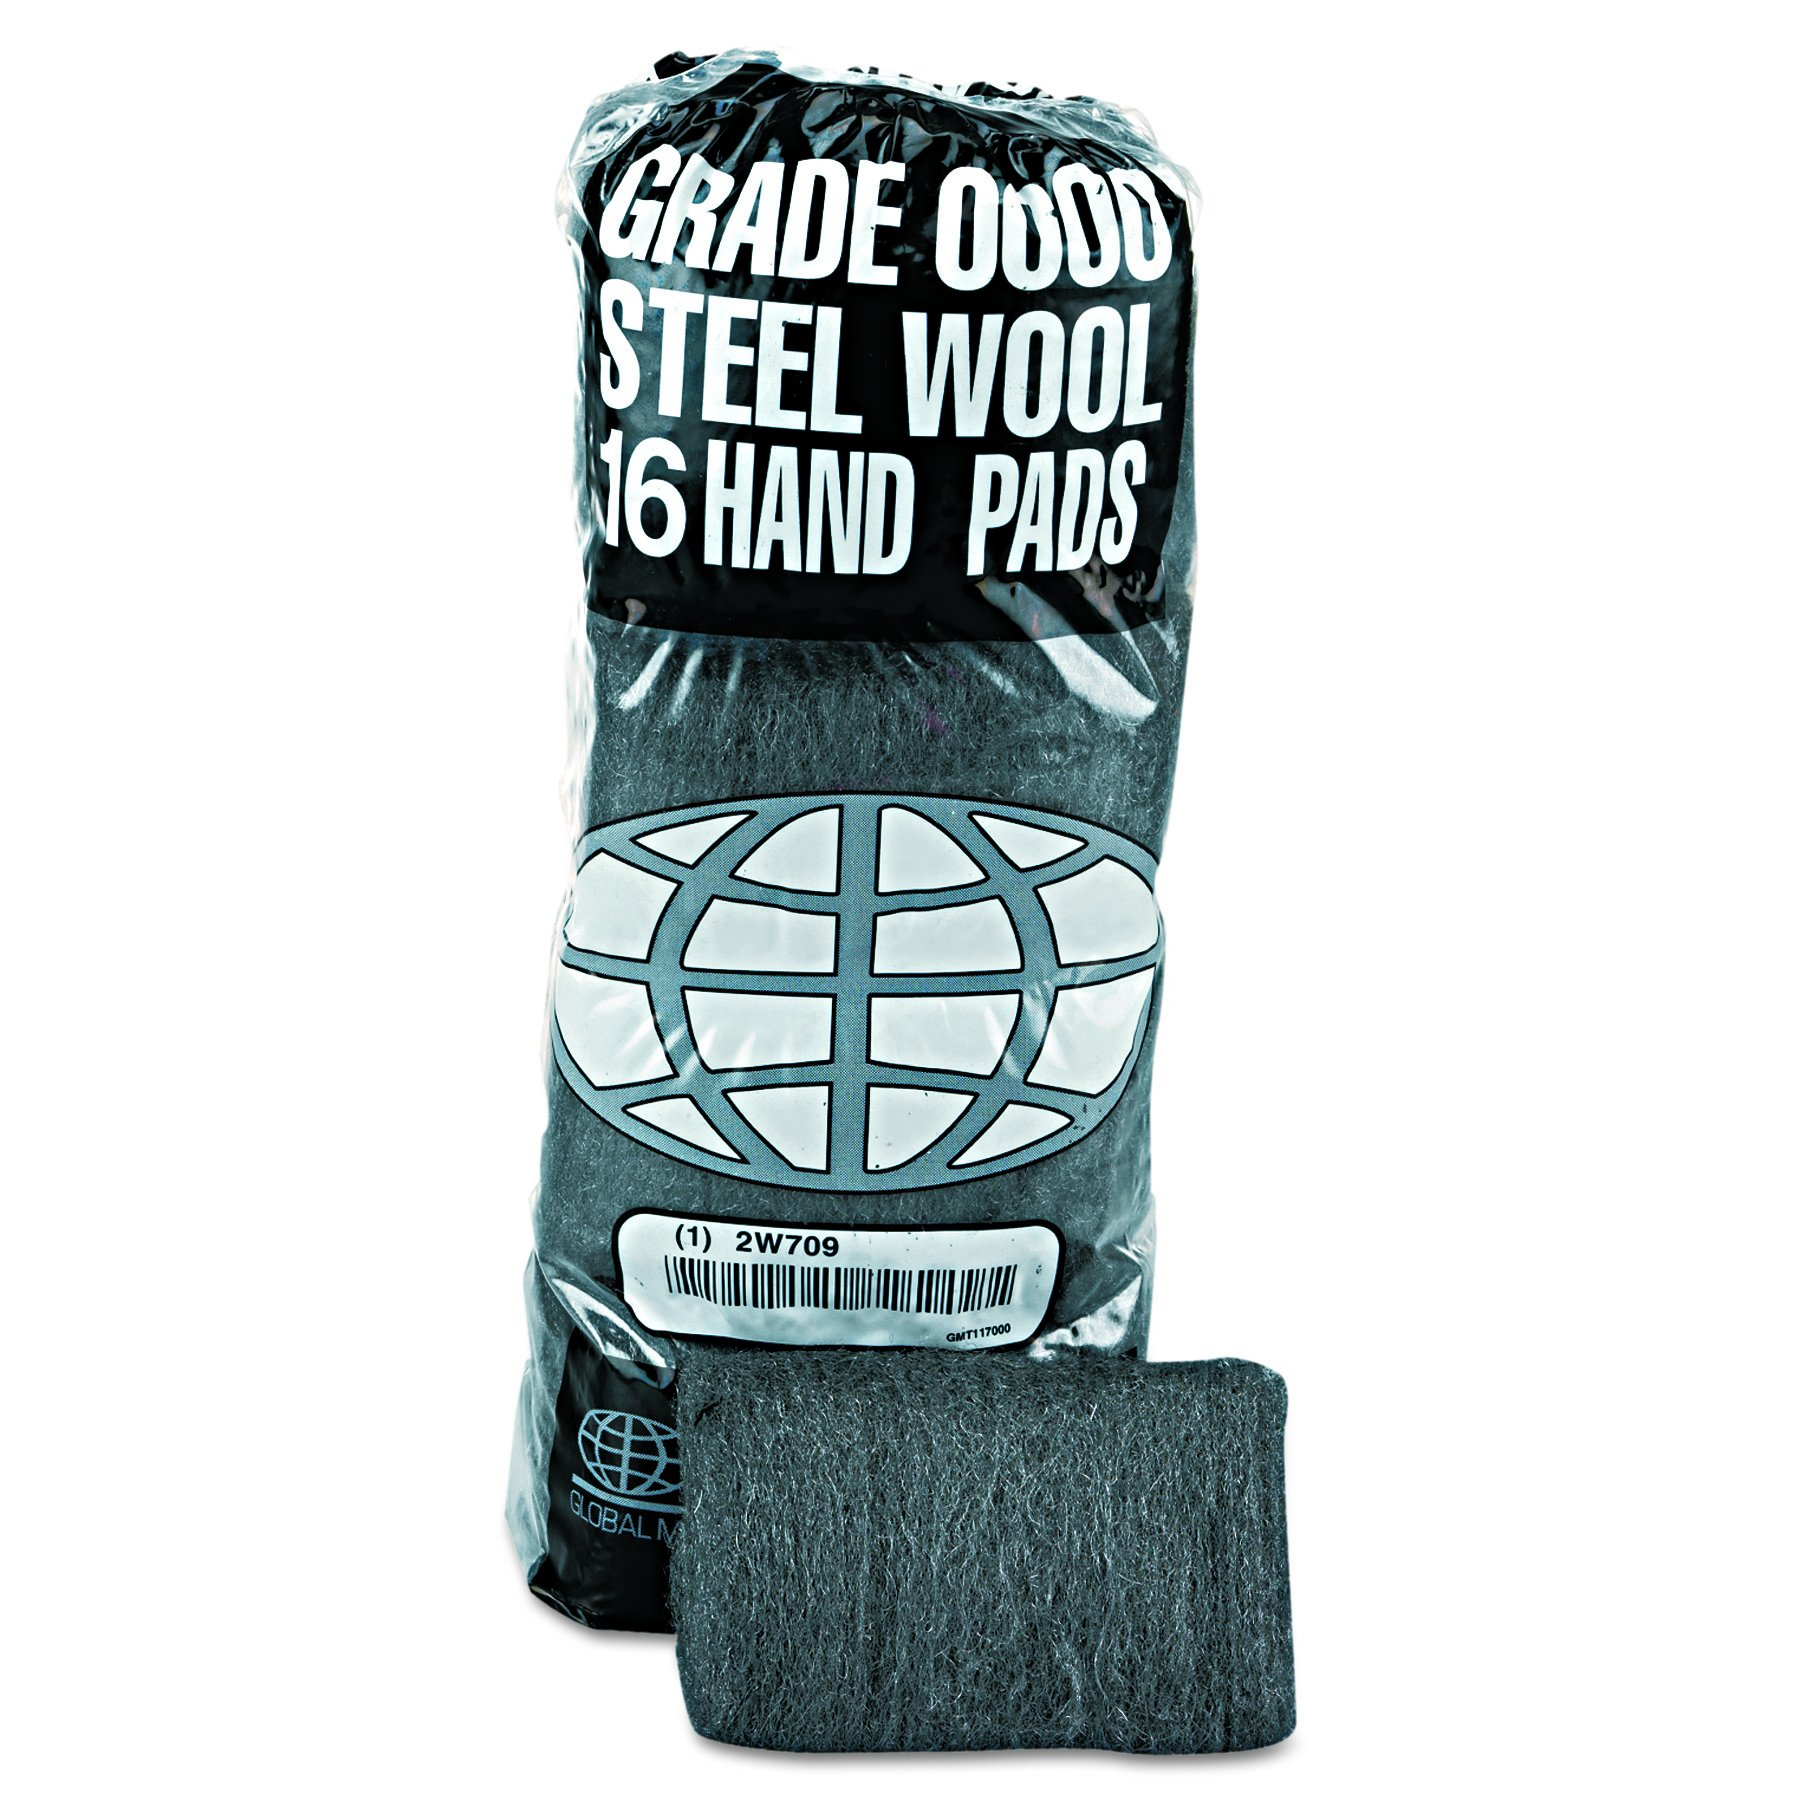 GMT 117000 Industrial-Quality Steel Wool Hand Pad Super Fine Grade 0000 16-Pack (Case of 12) by Global Material Technologies